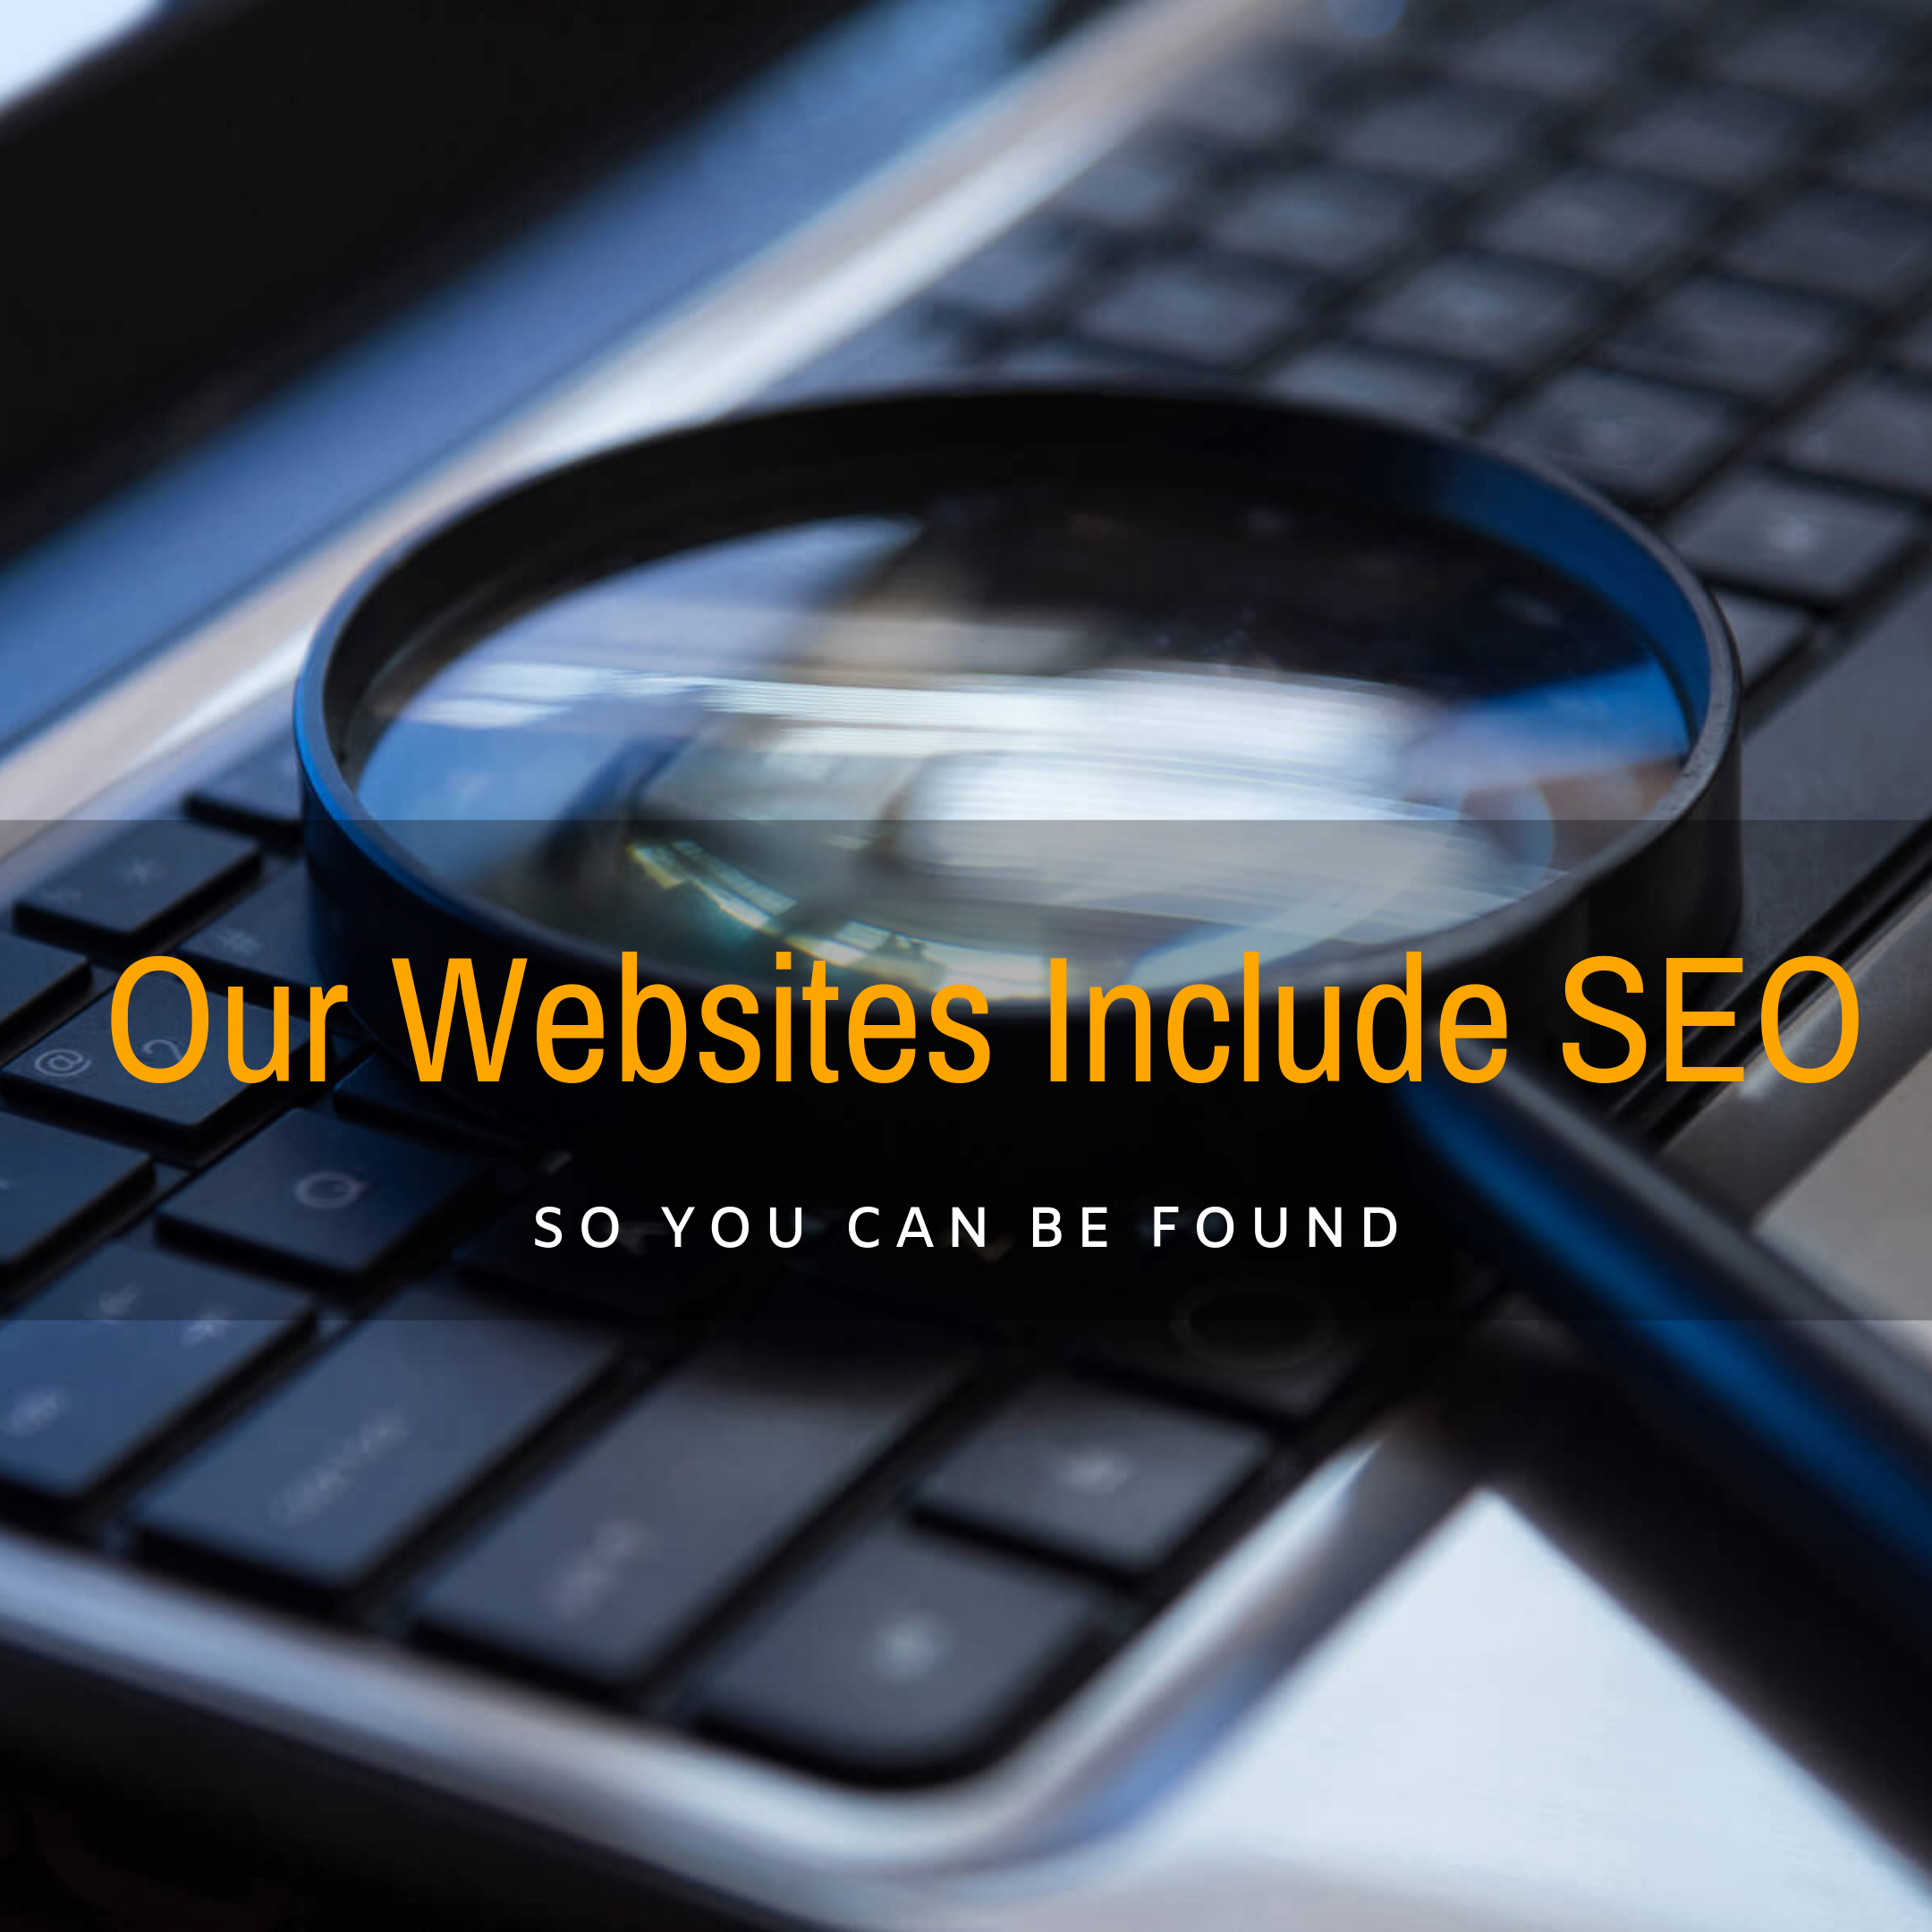 our-websites-include-seo8.png